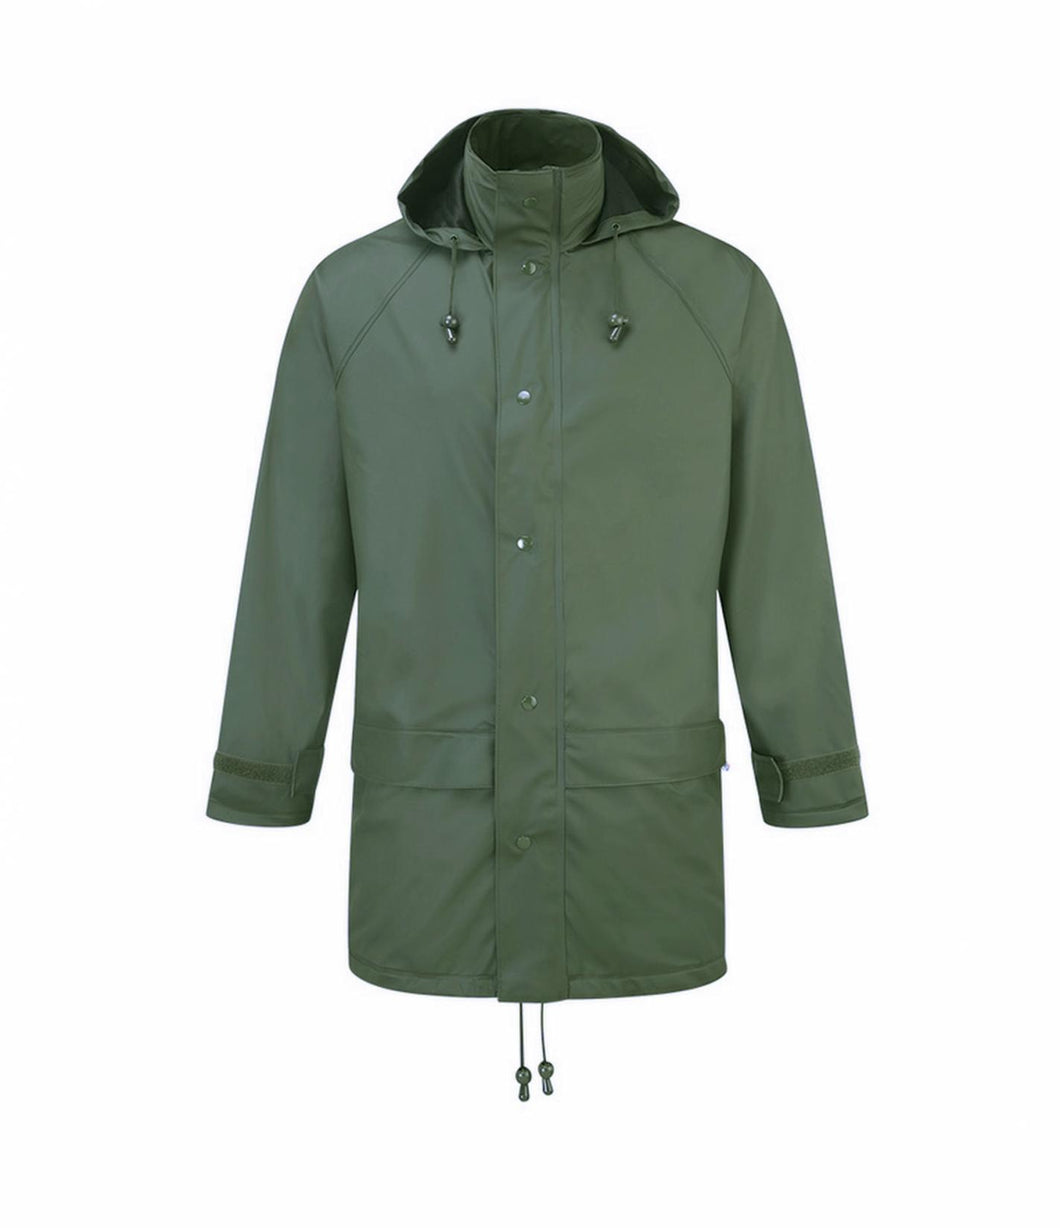 Fortress Flex warerproof Jacket